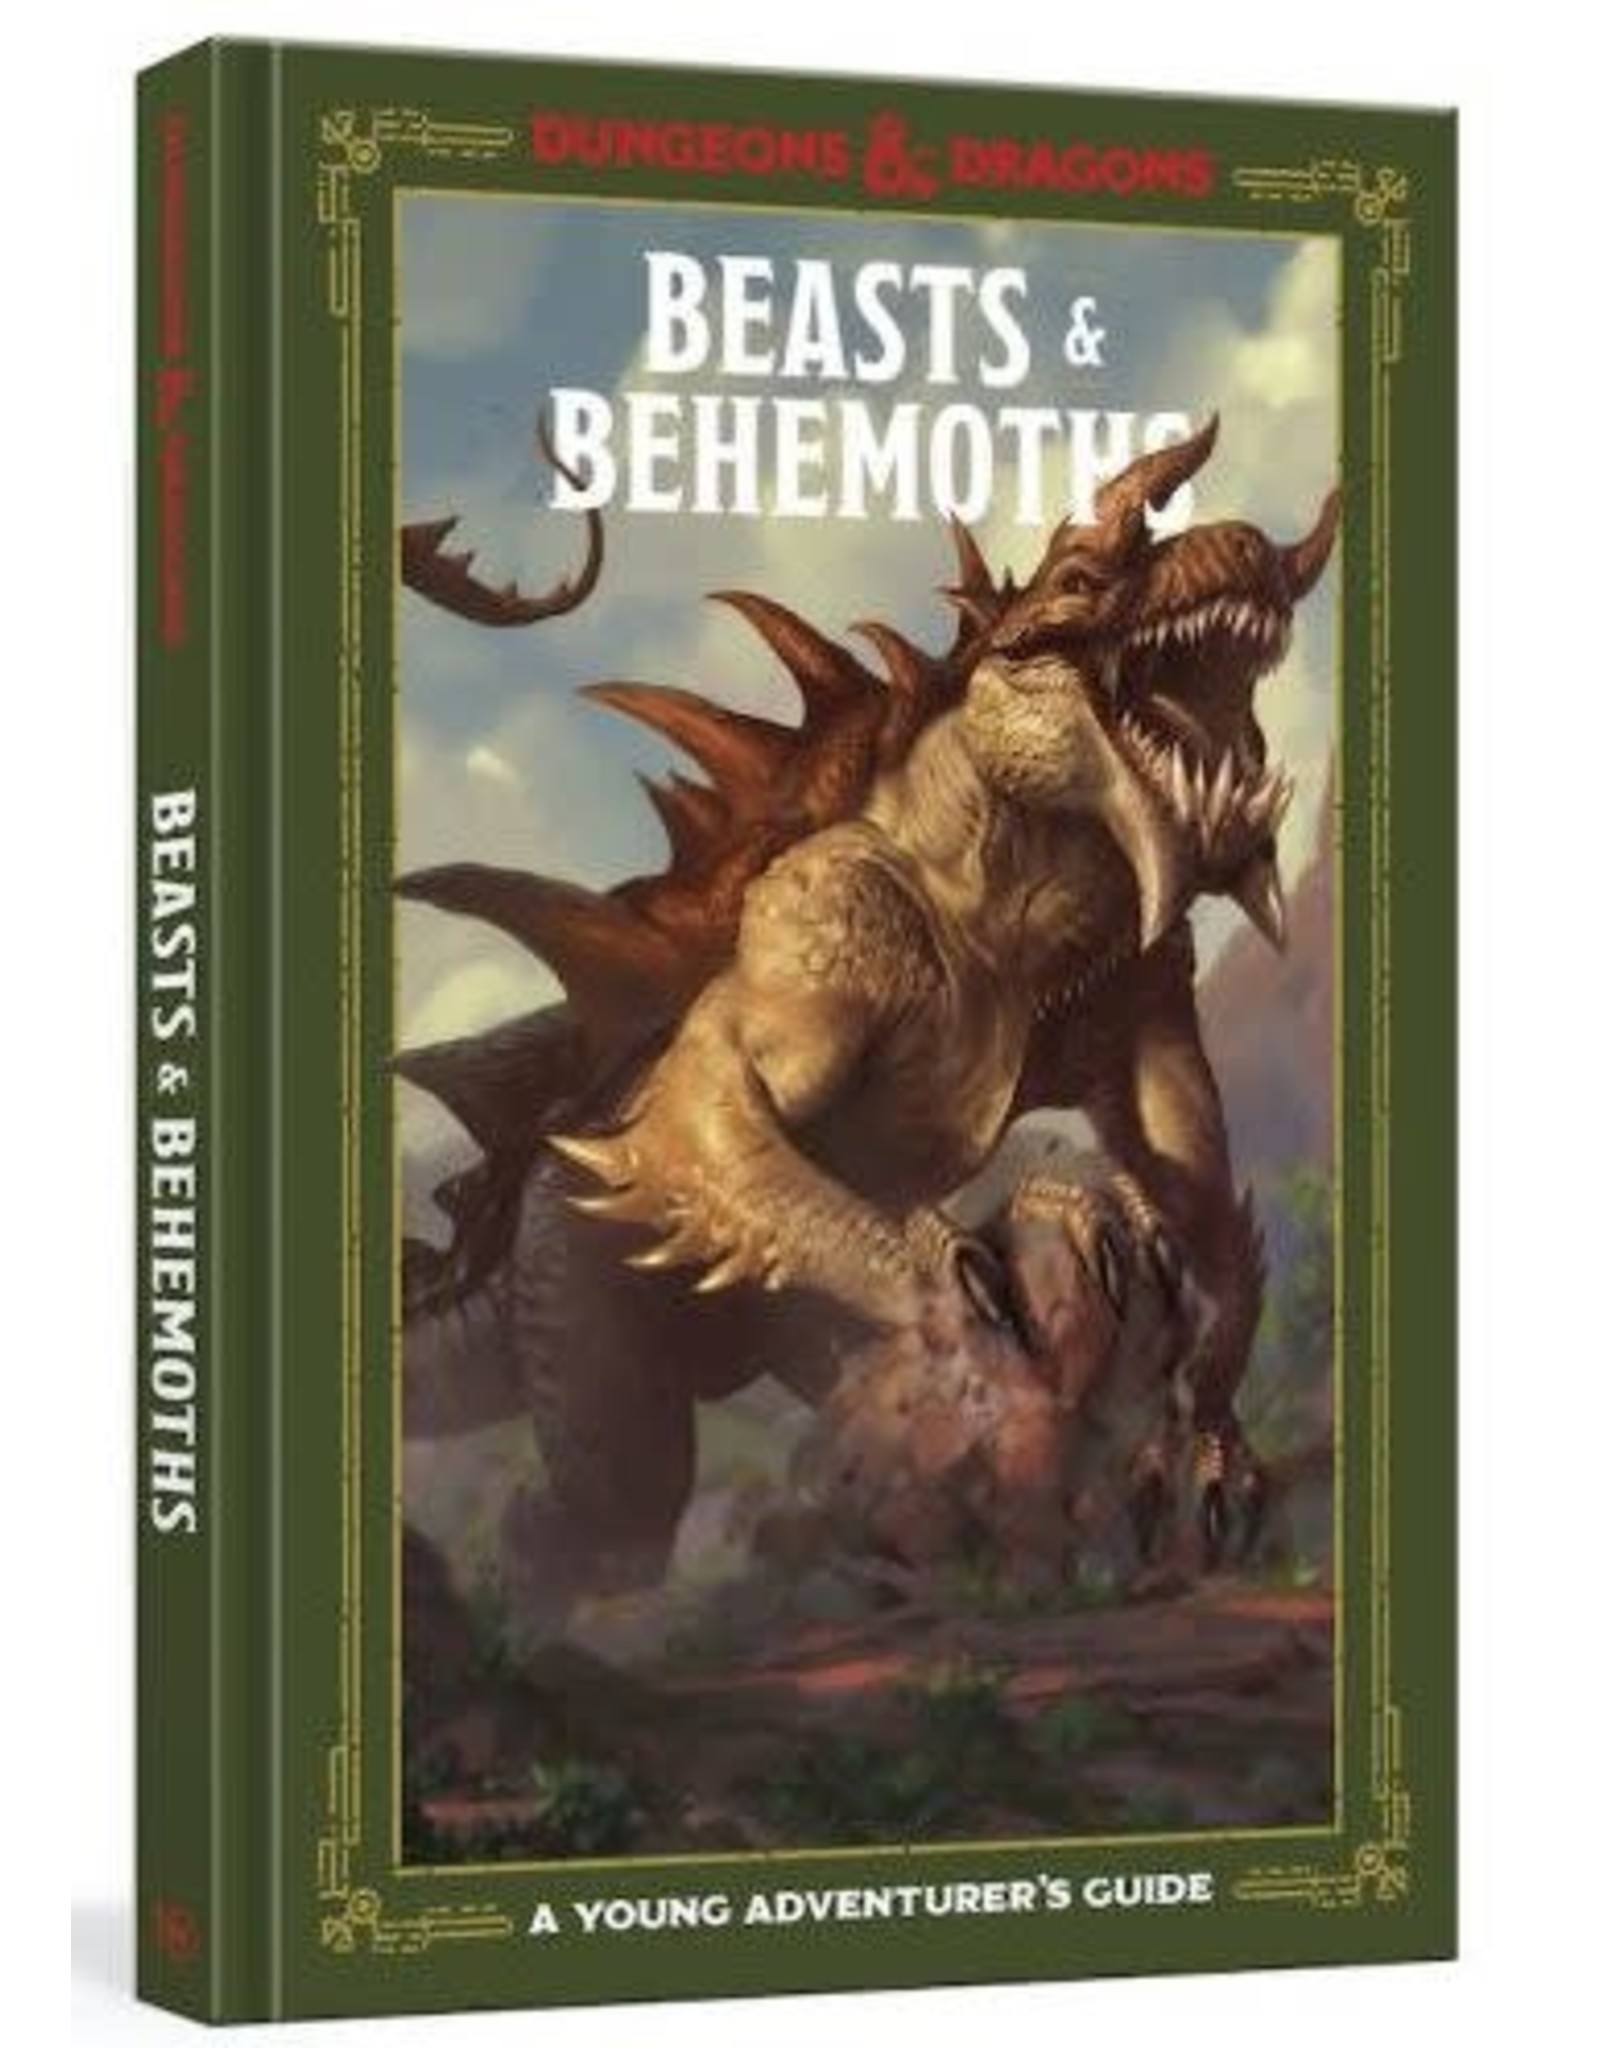 TEN SPEED PRESS D&D YOUNG ADVENTURER'S GUIDE: BEASTS & BEHEMOTHS